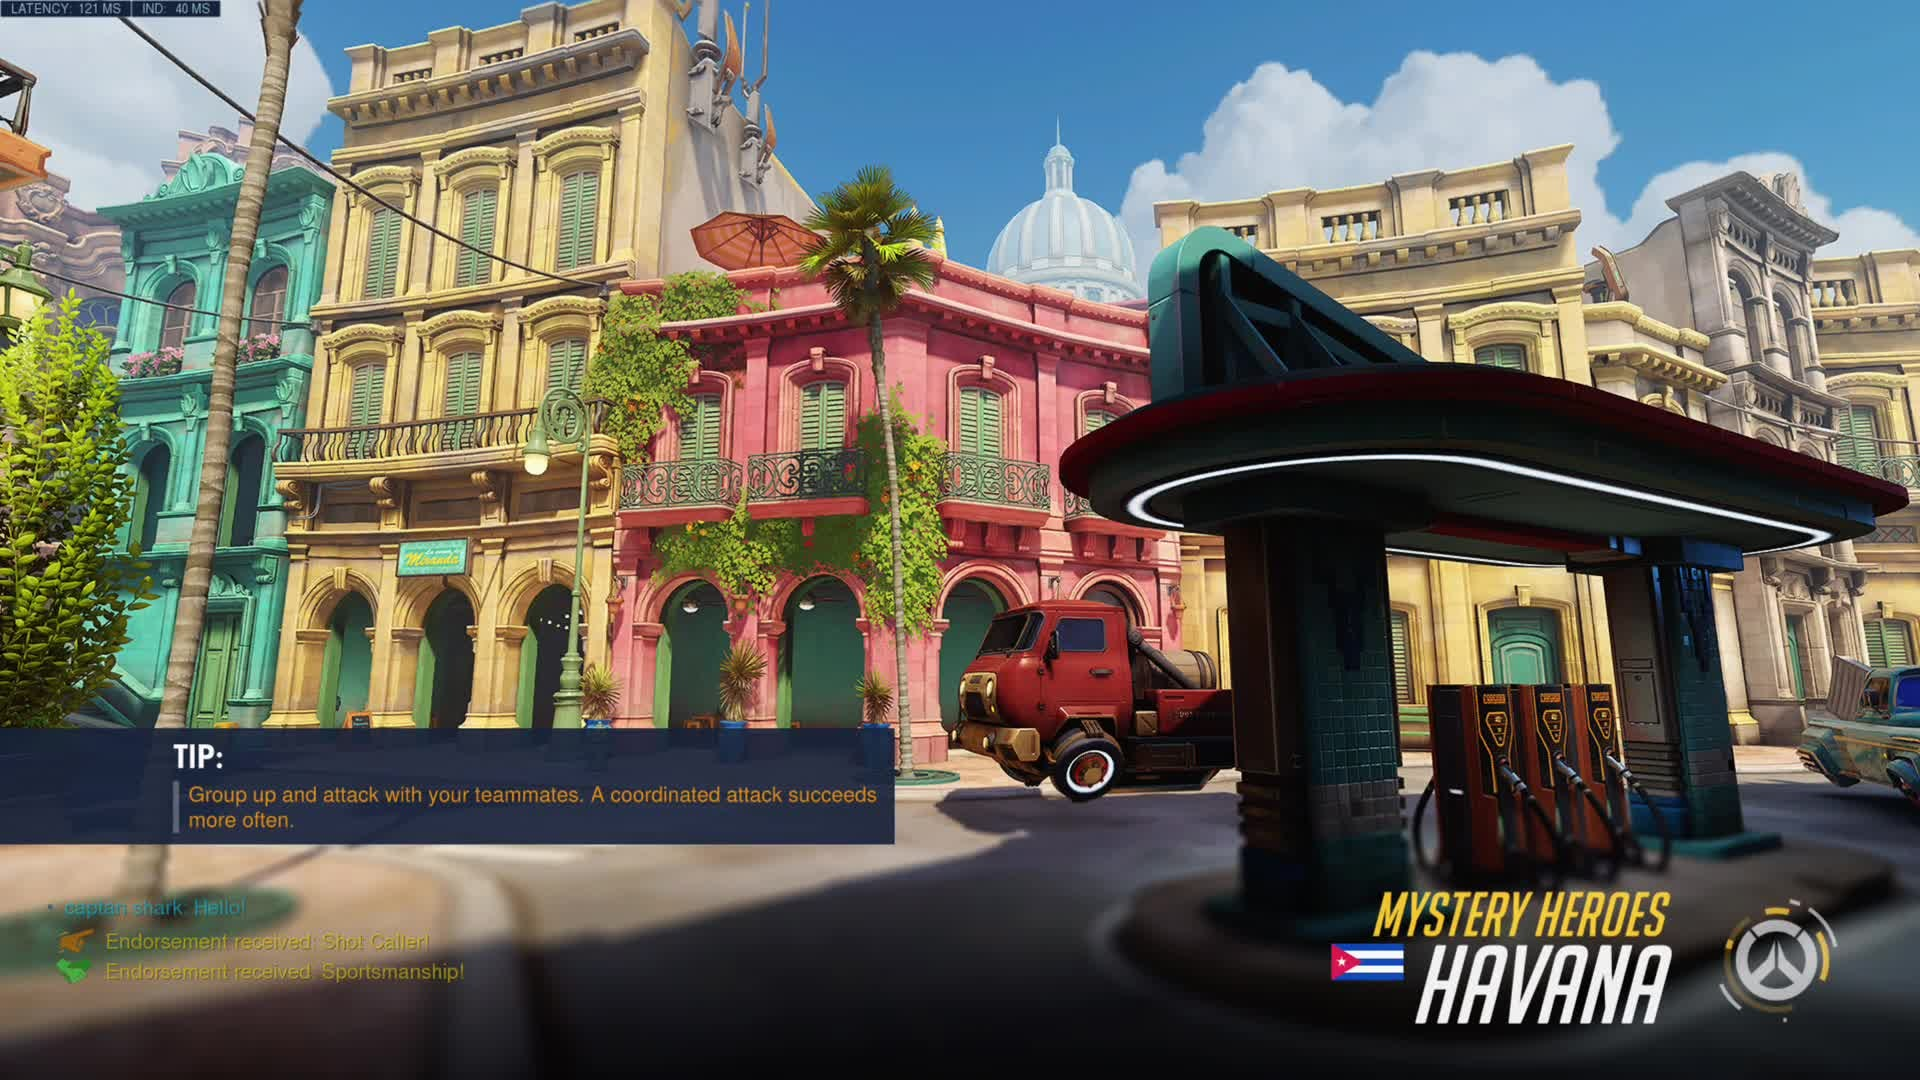 Overwatch: General - Bruh? video cover image 1